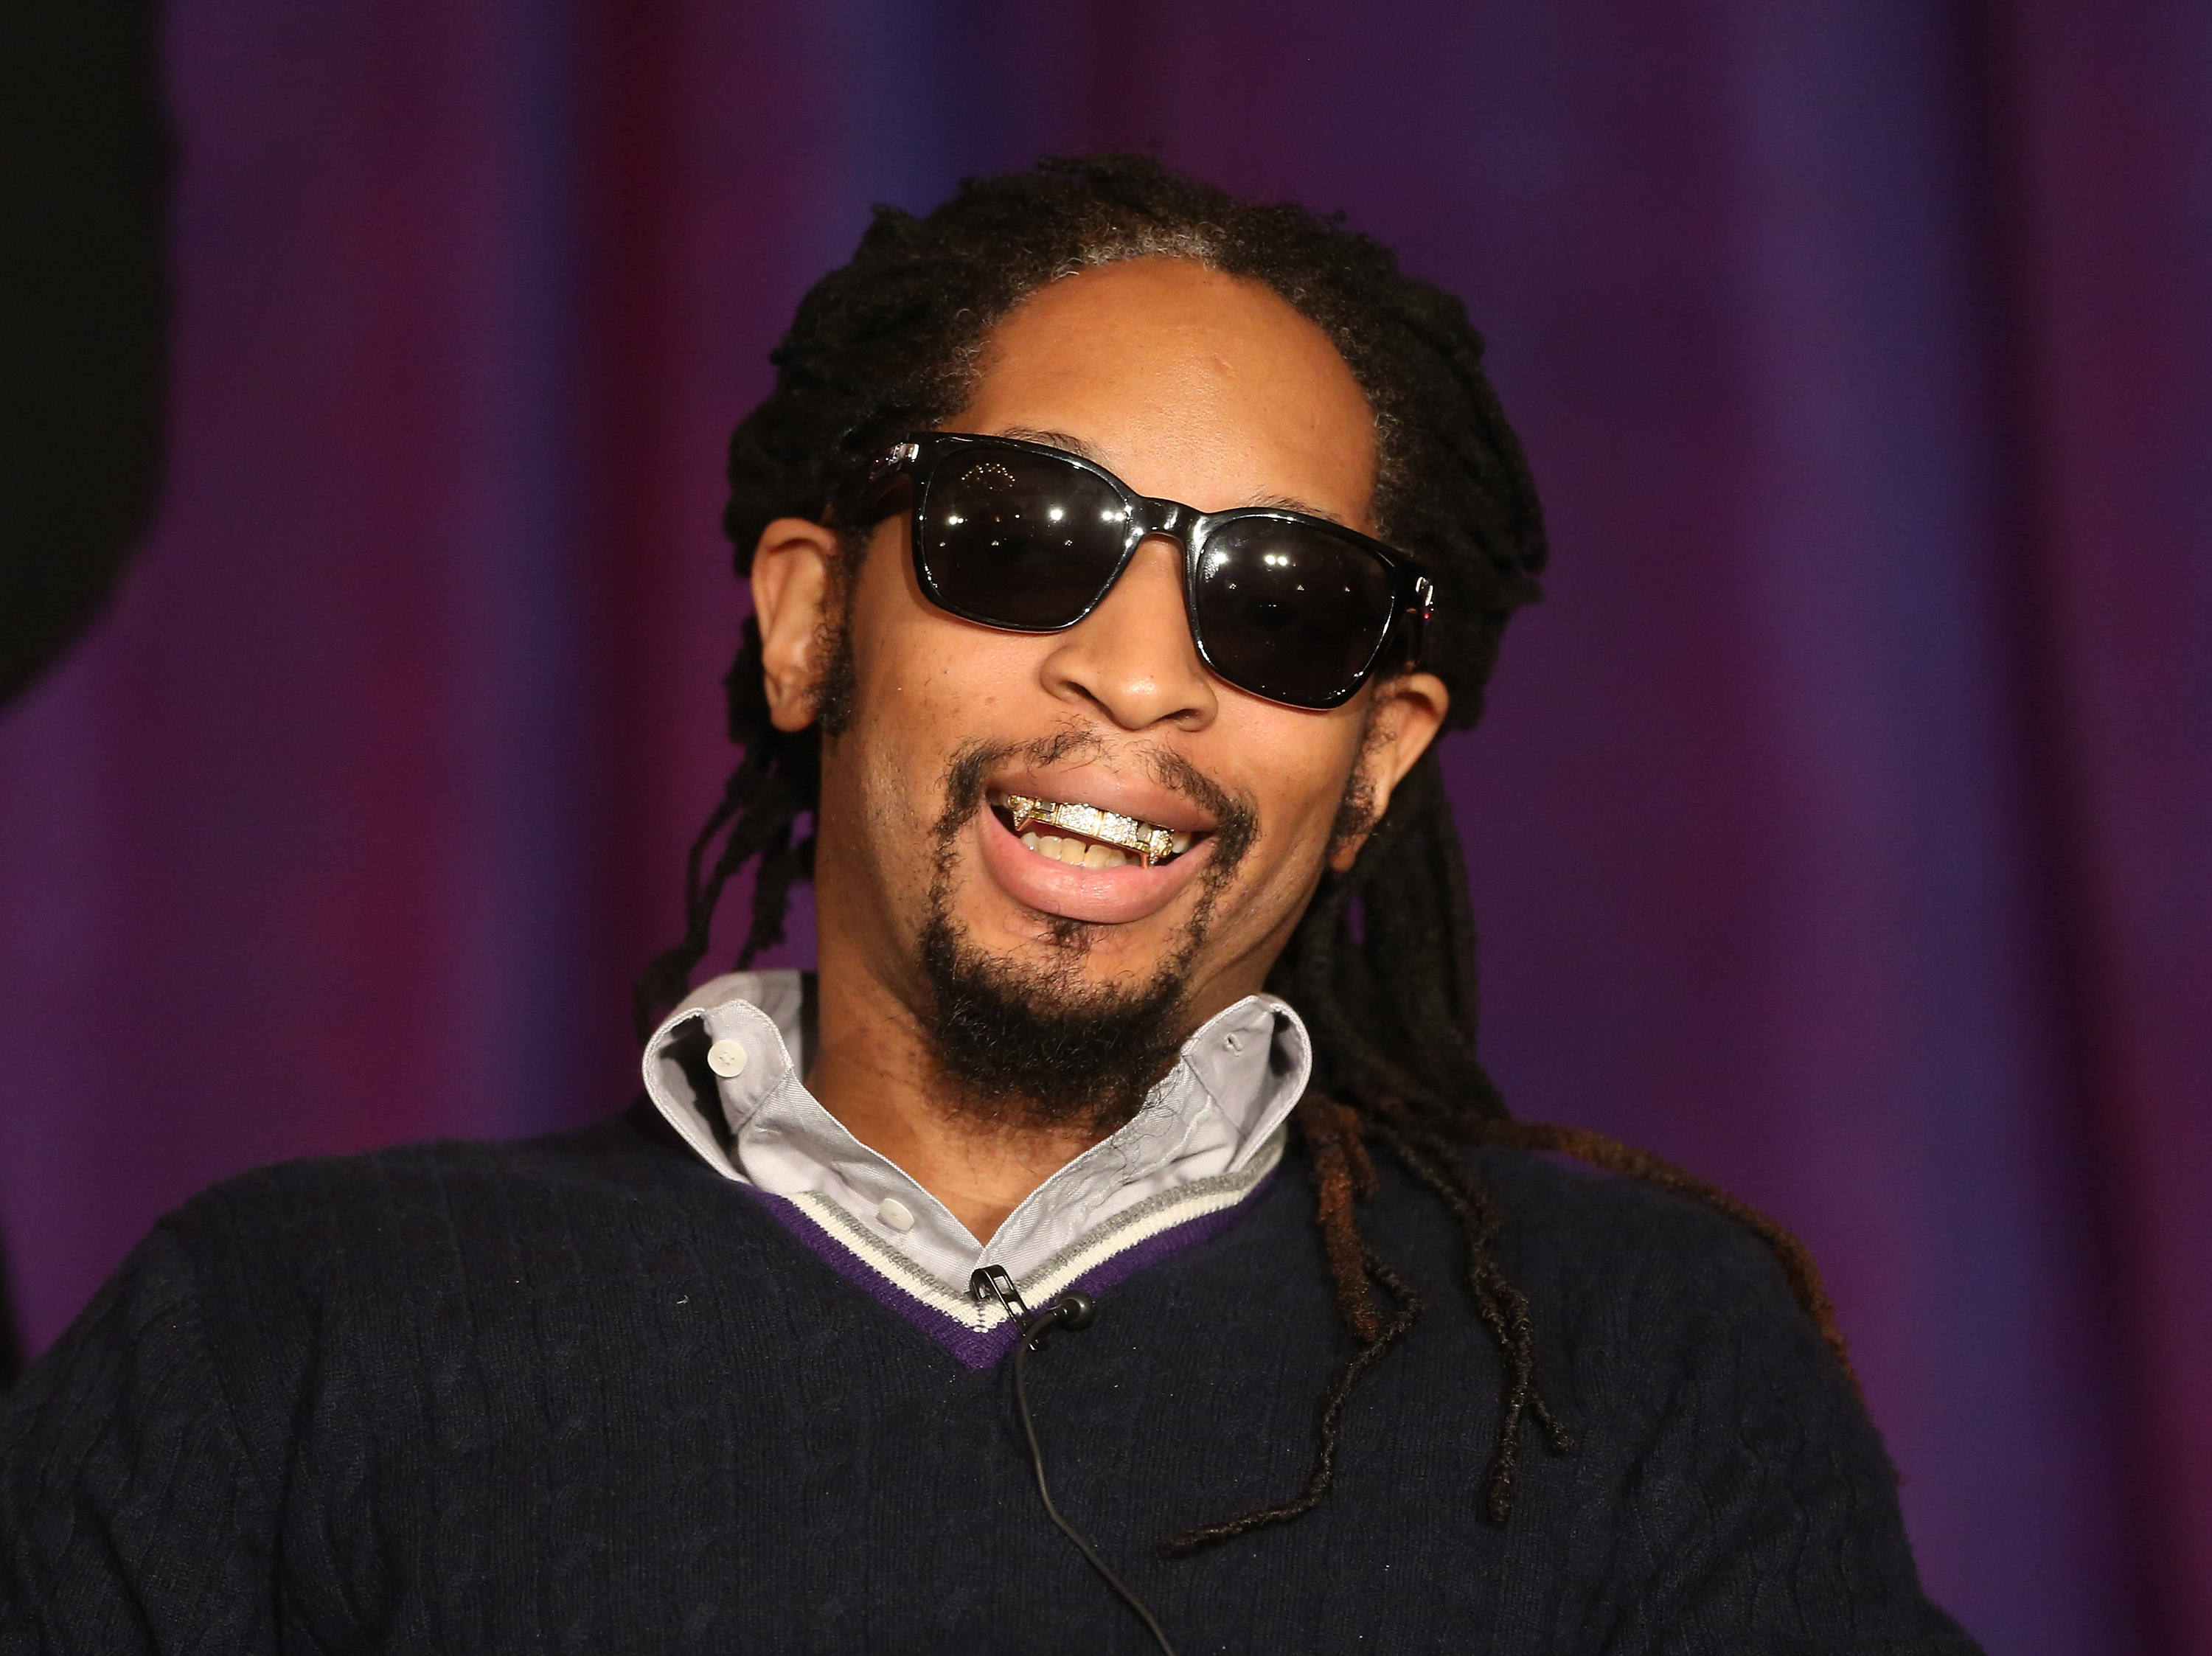 Lil Jon Wallpapers Images Photos Pictures Backgrounds 3000x2246